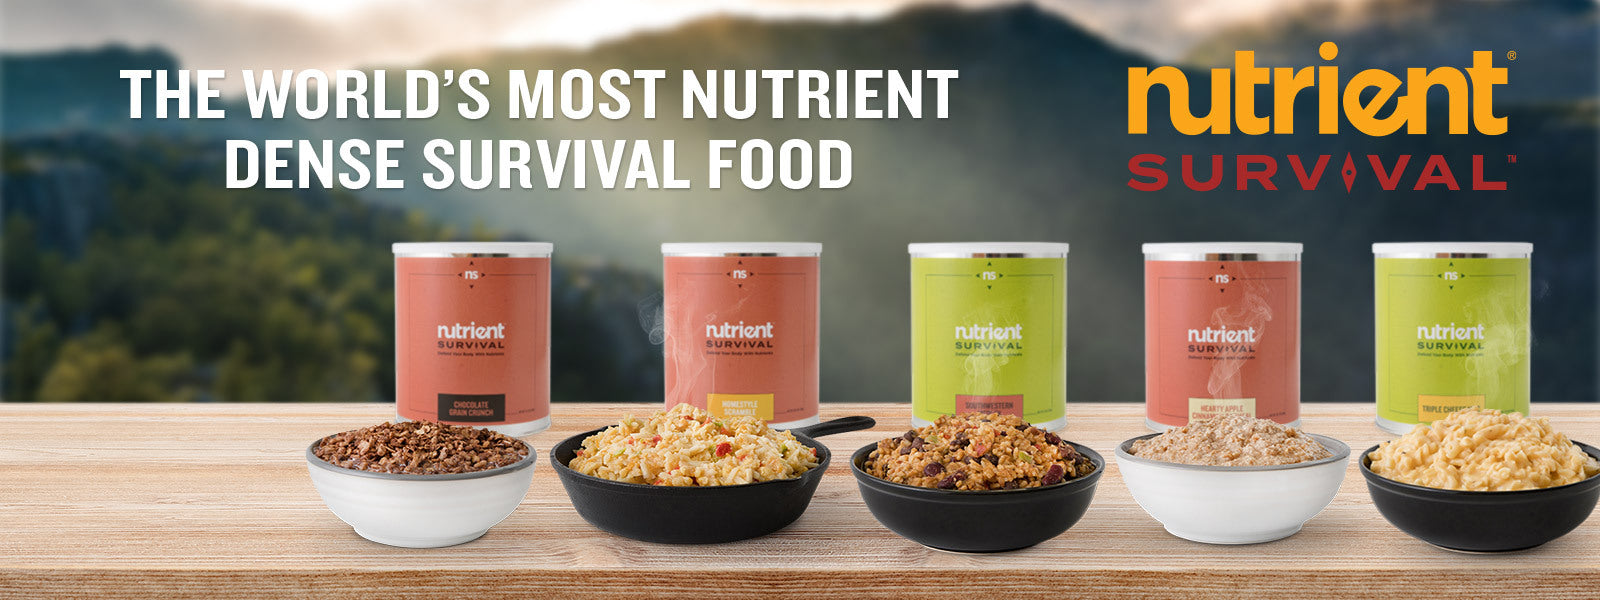 Nutrient Survival - Most dense Survival Food